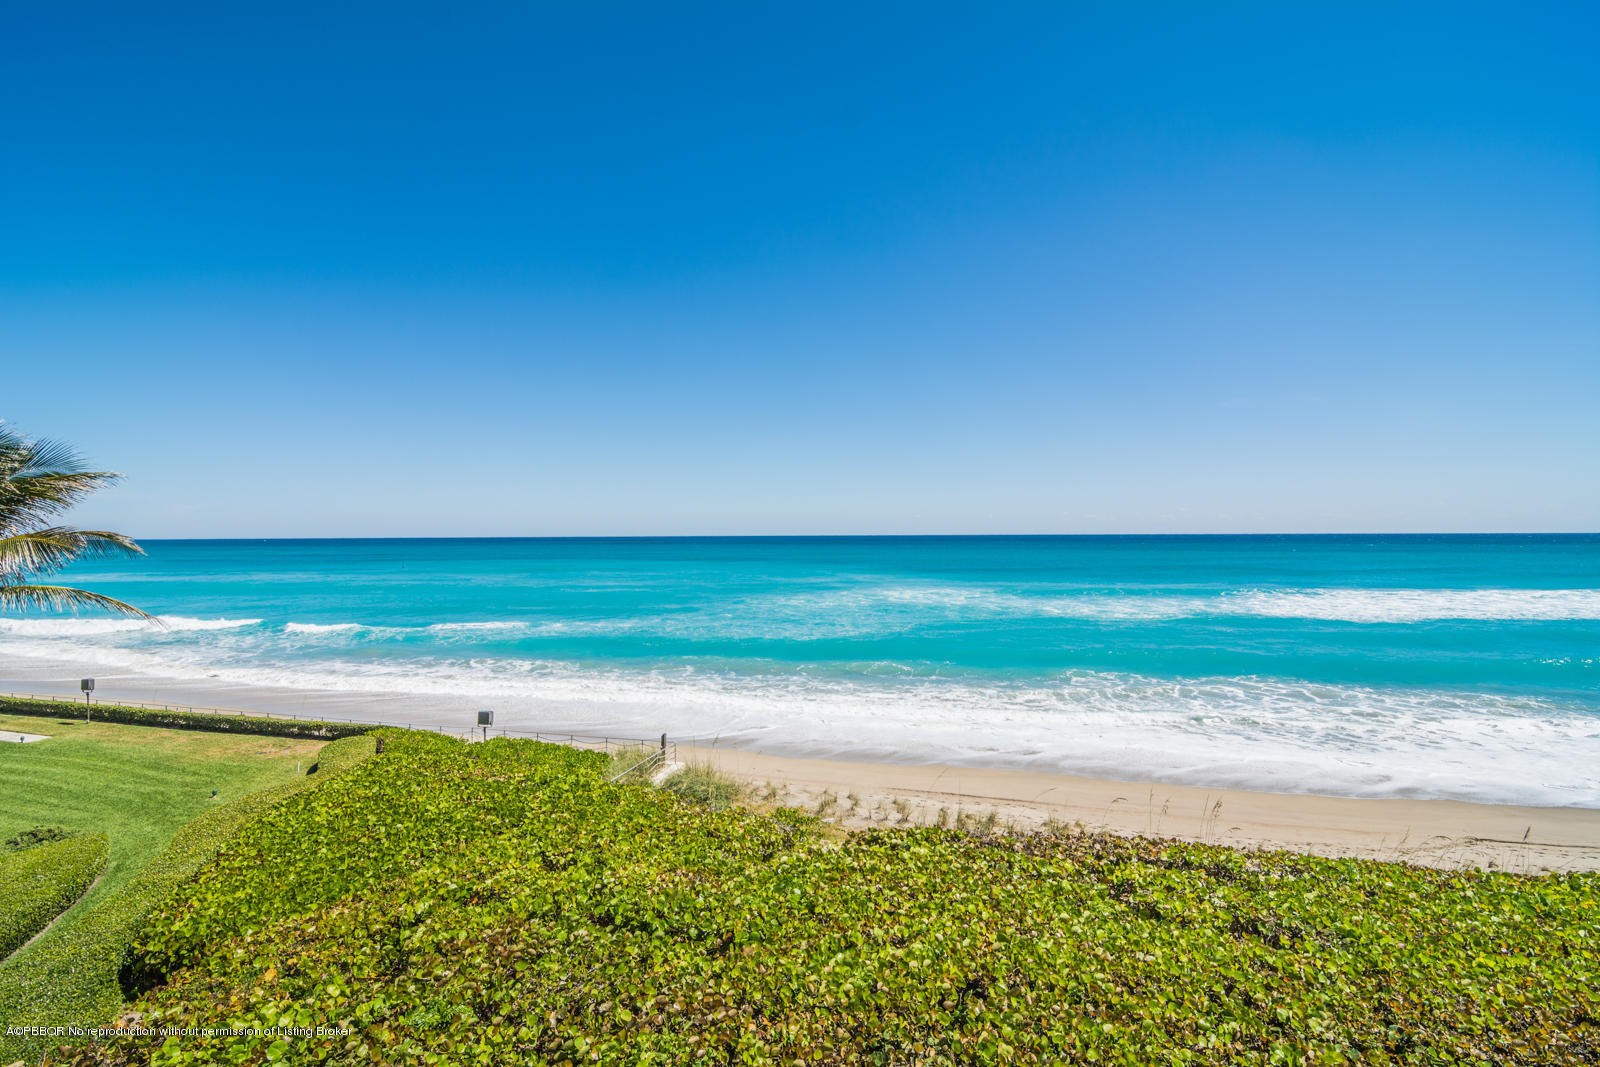 3170 S Ocean Boulevard, 202 S - Palm Beach, Florida